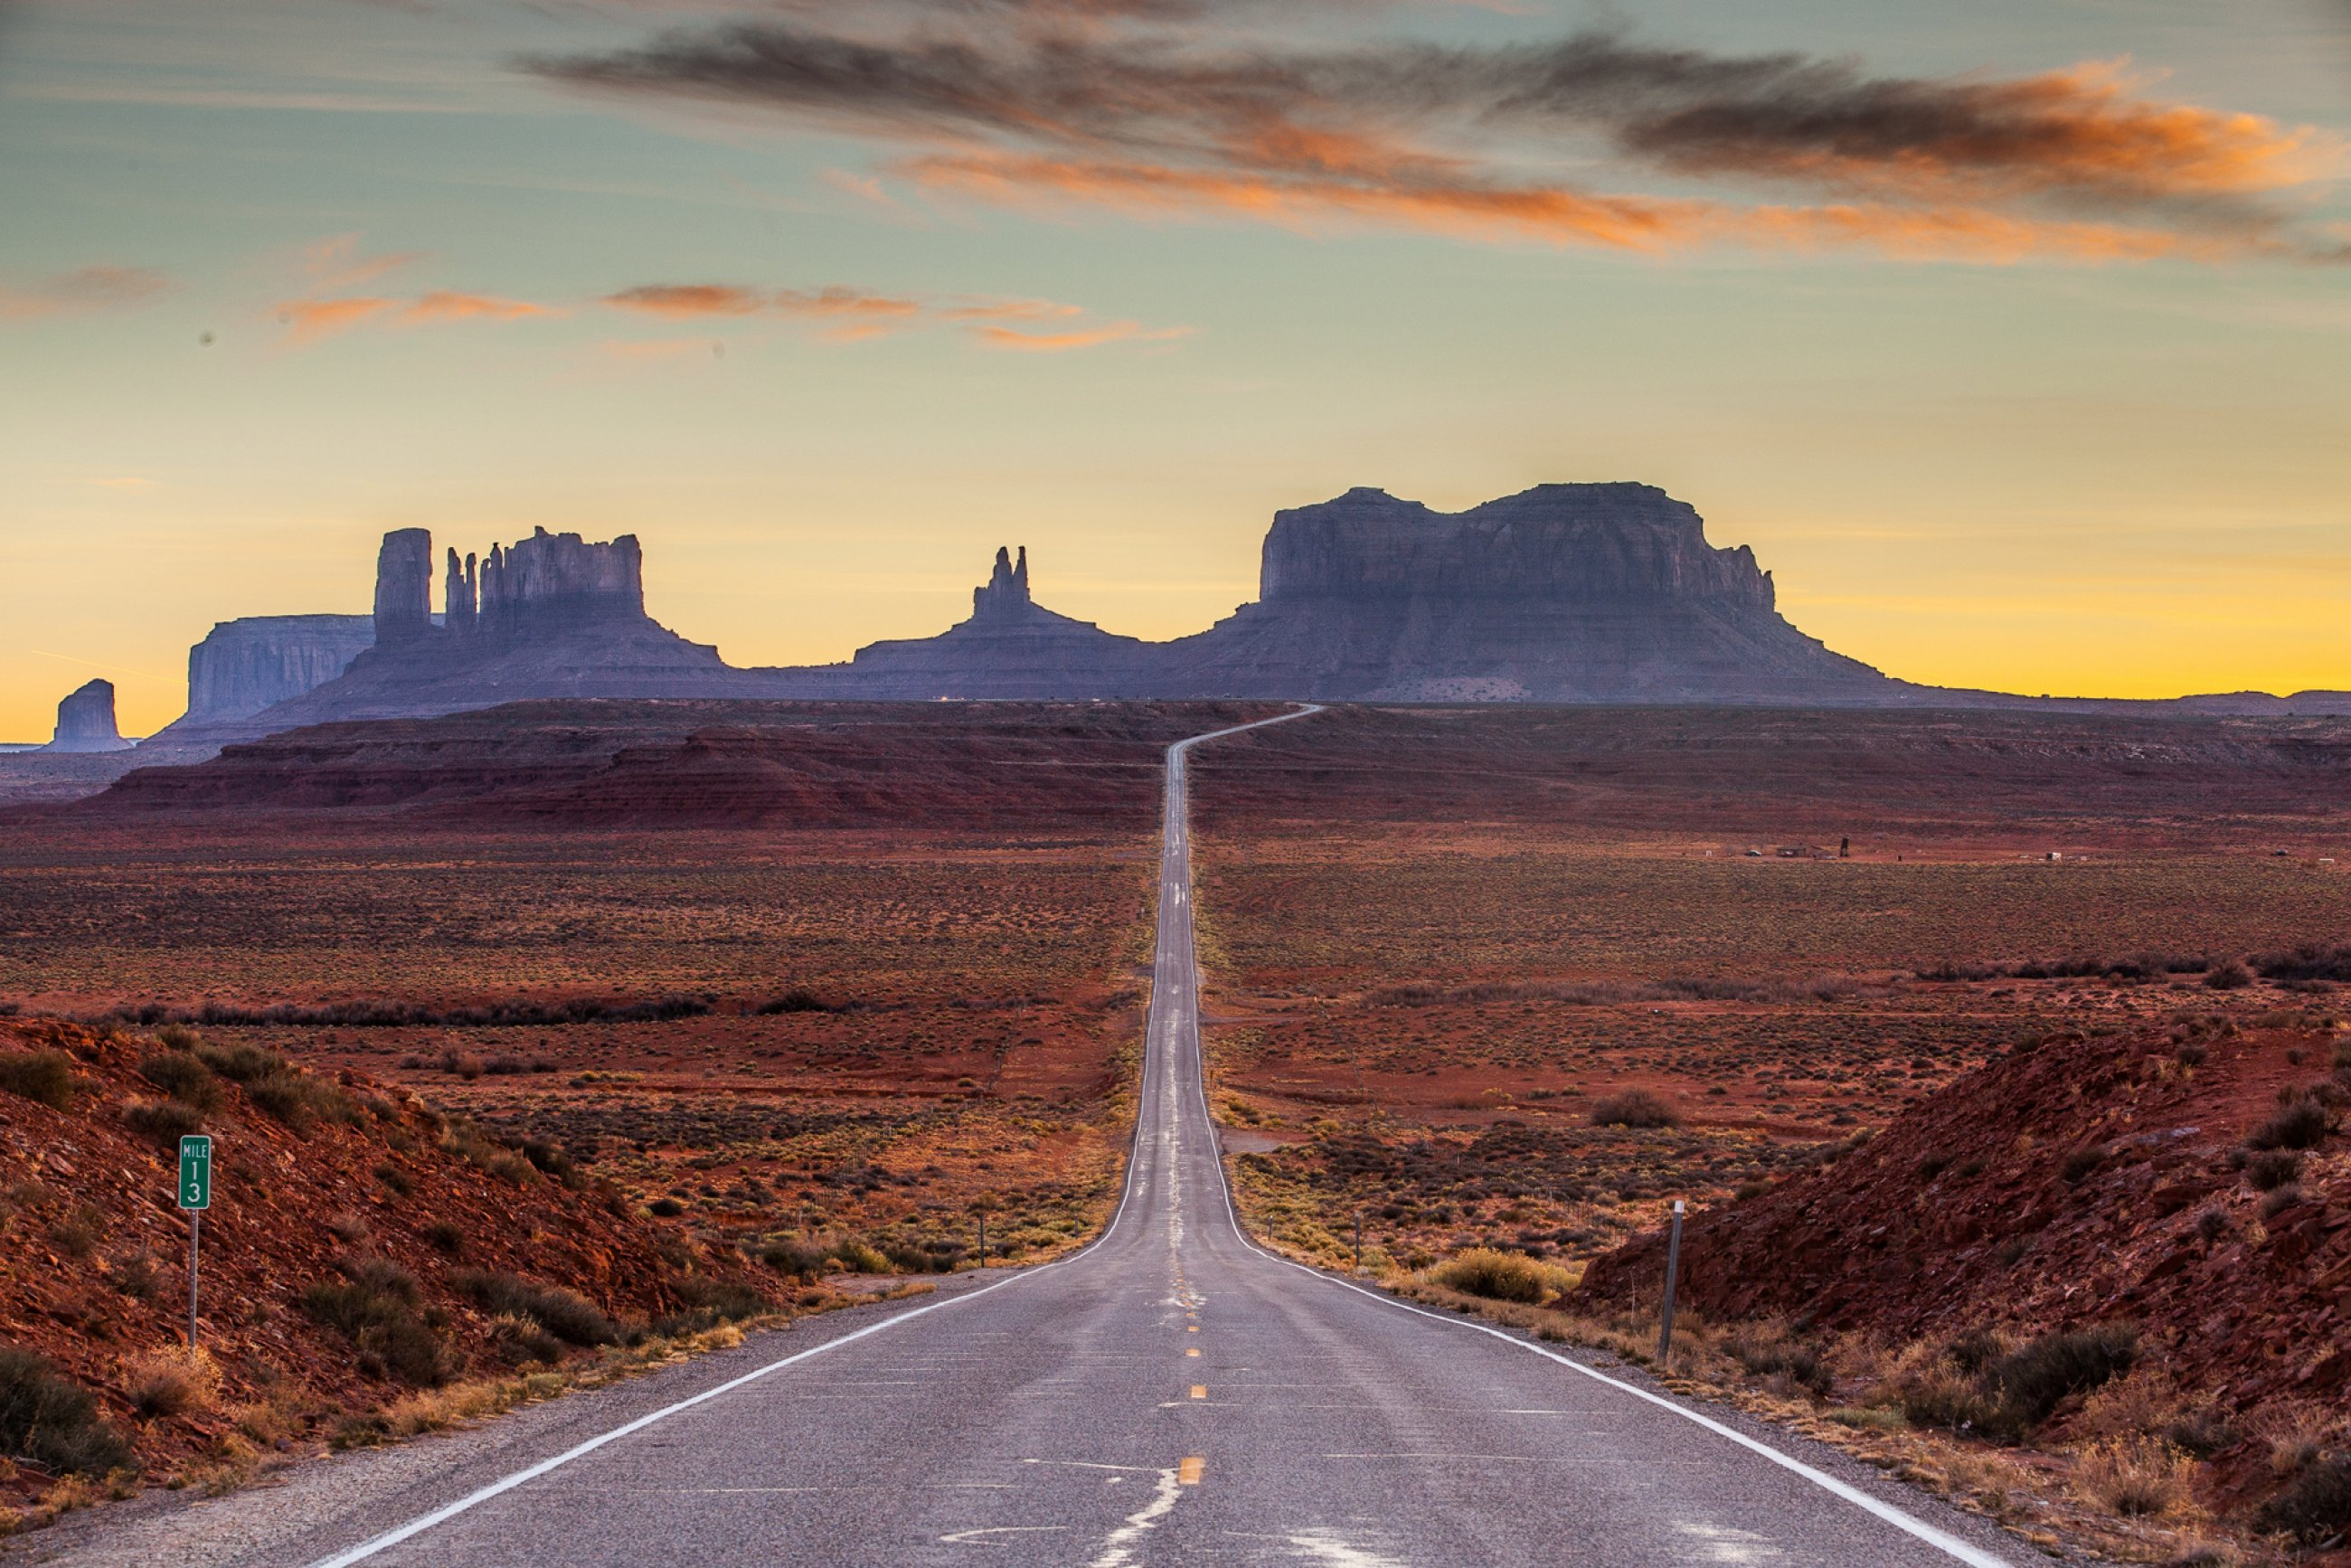 https://bubo.sk/uploads/galleries/8379/monument-valley-shutterstock-78621931-3-.jpg